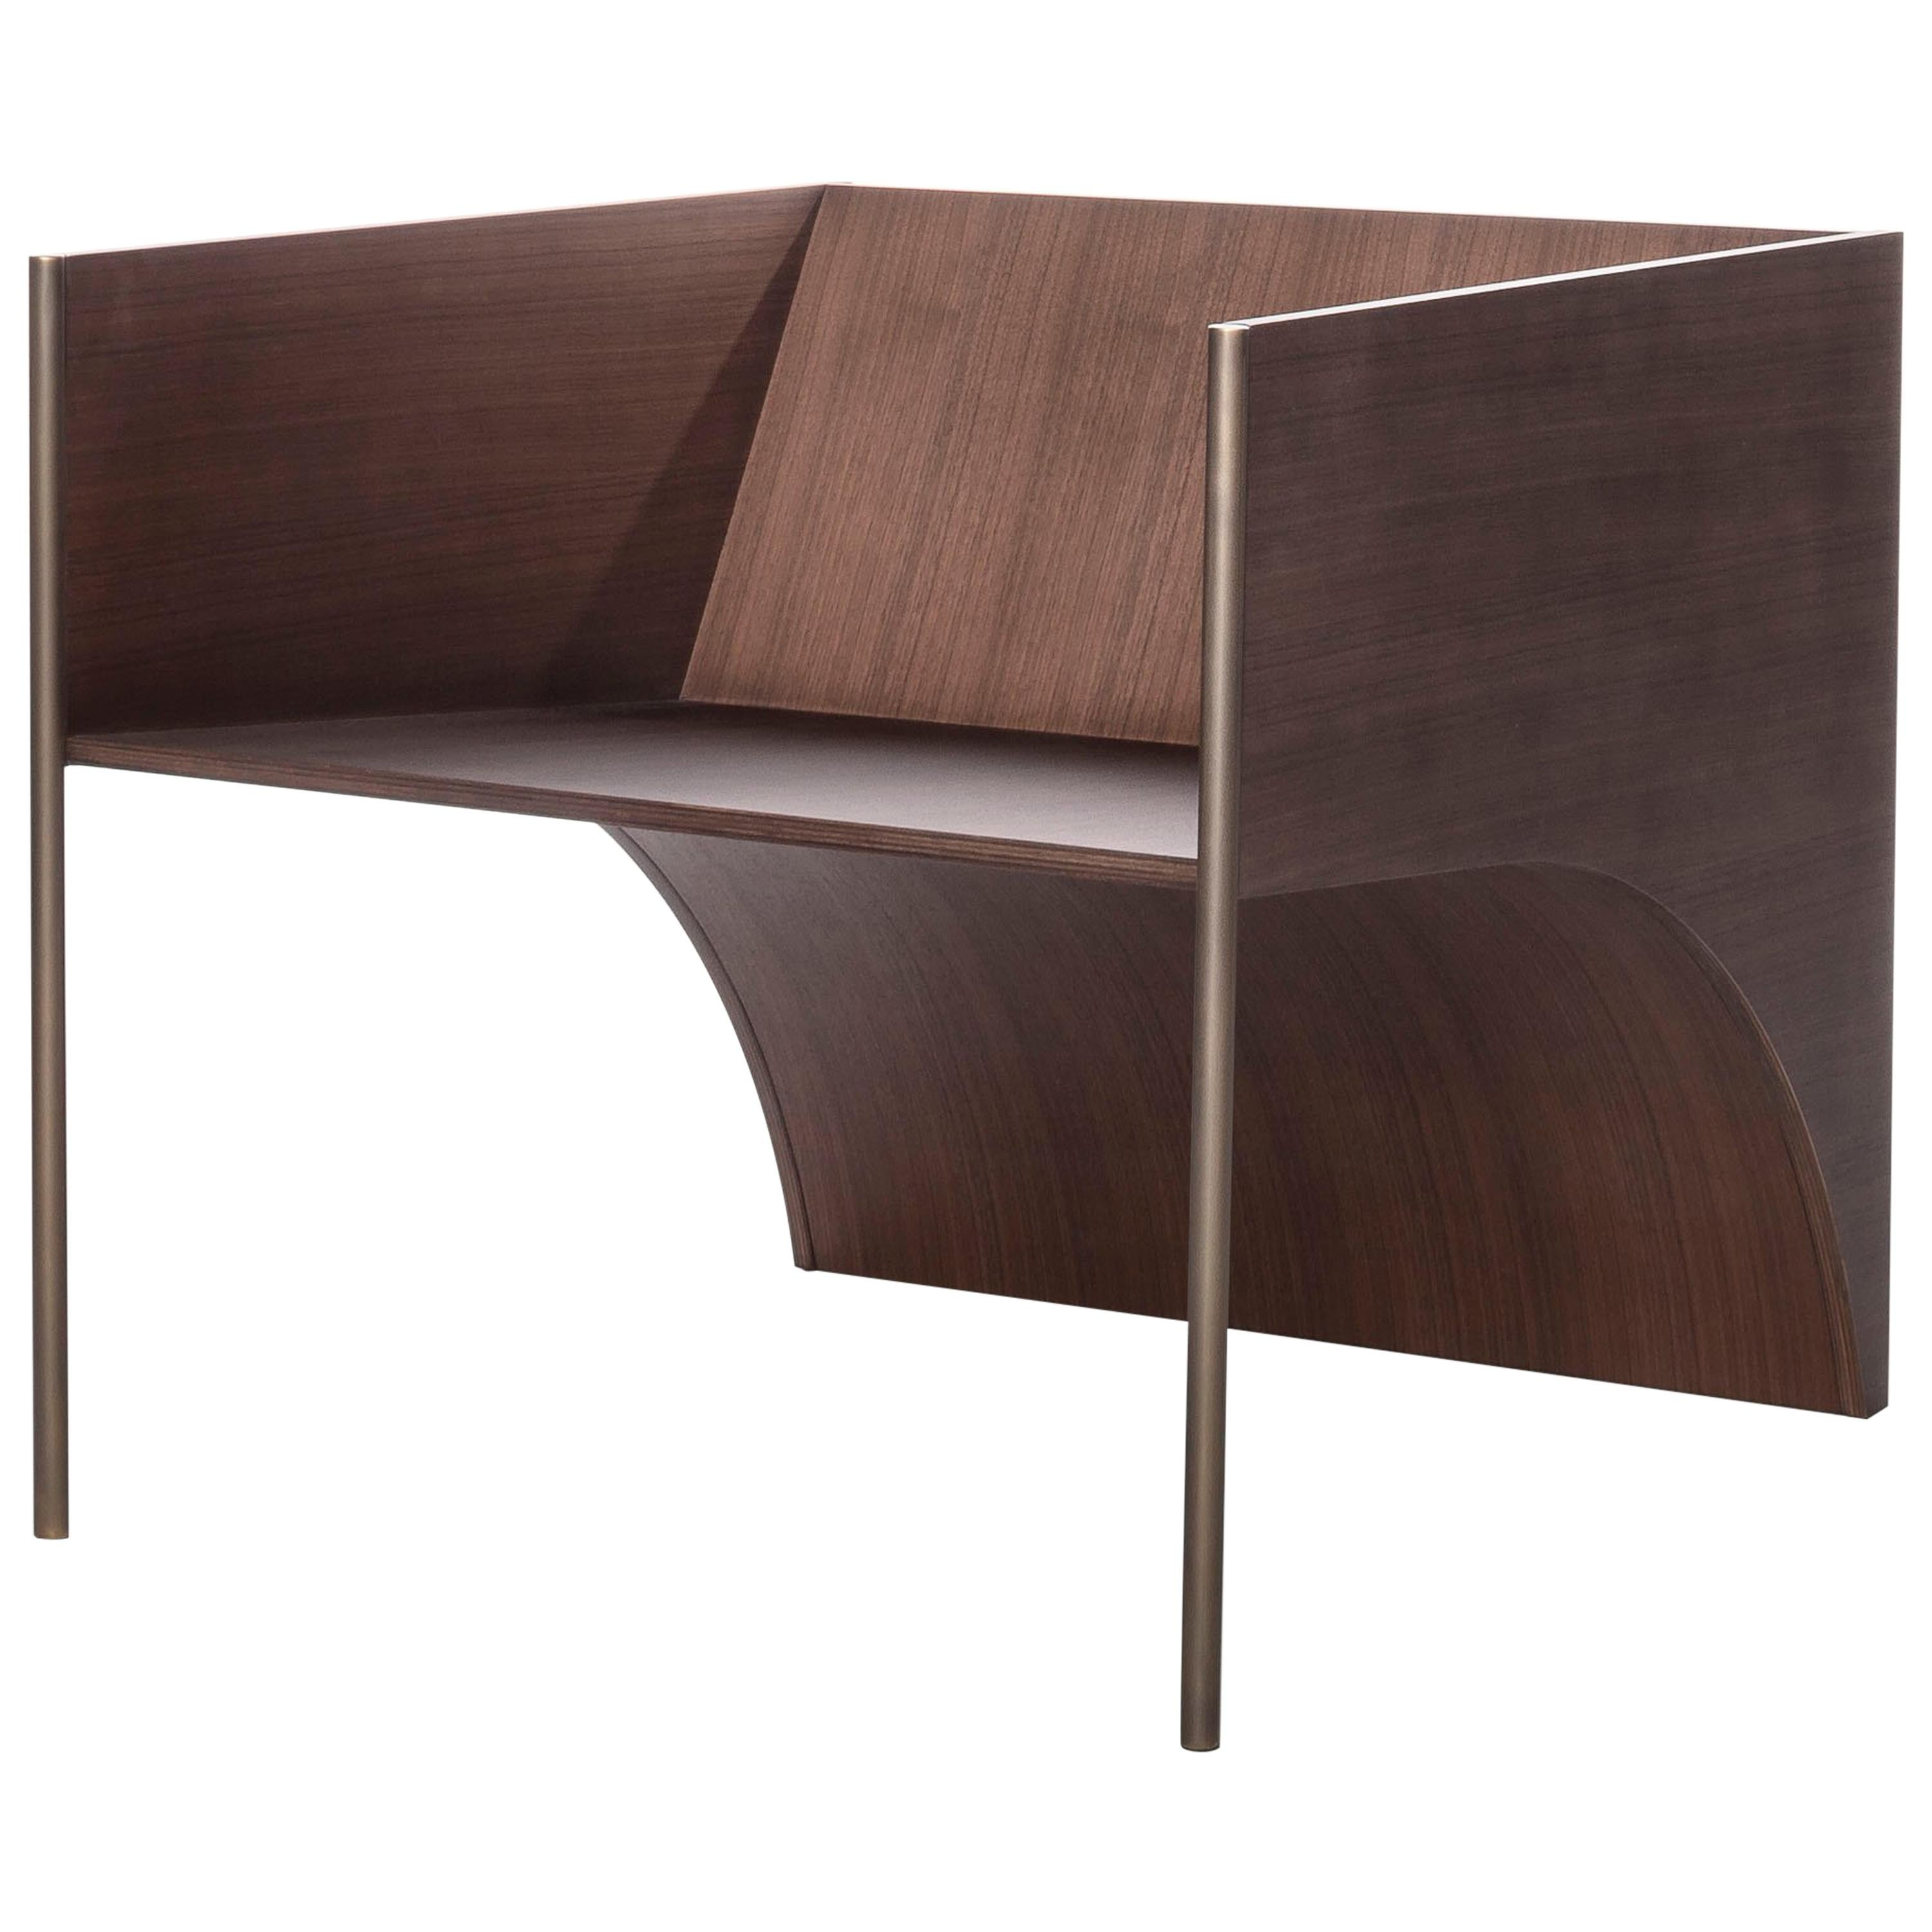 . Contemporary QD01 Chair with Walnut Wood and Brass Bronzed Structure